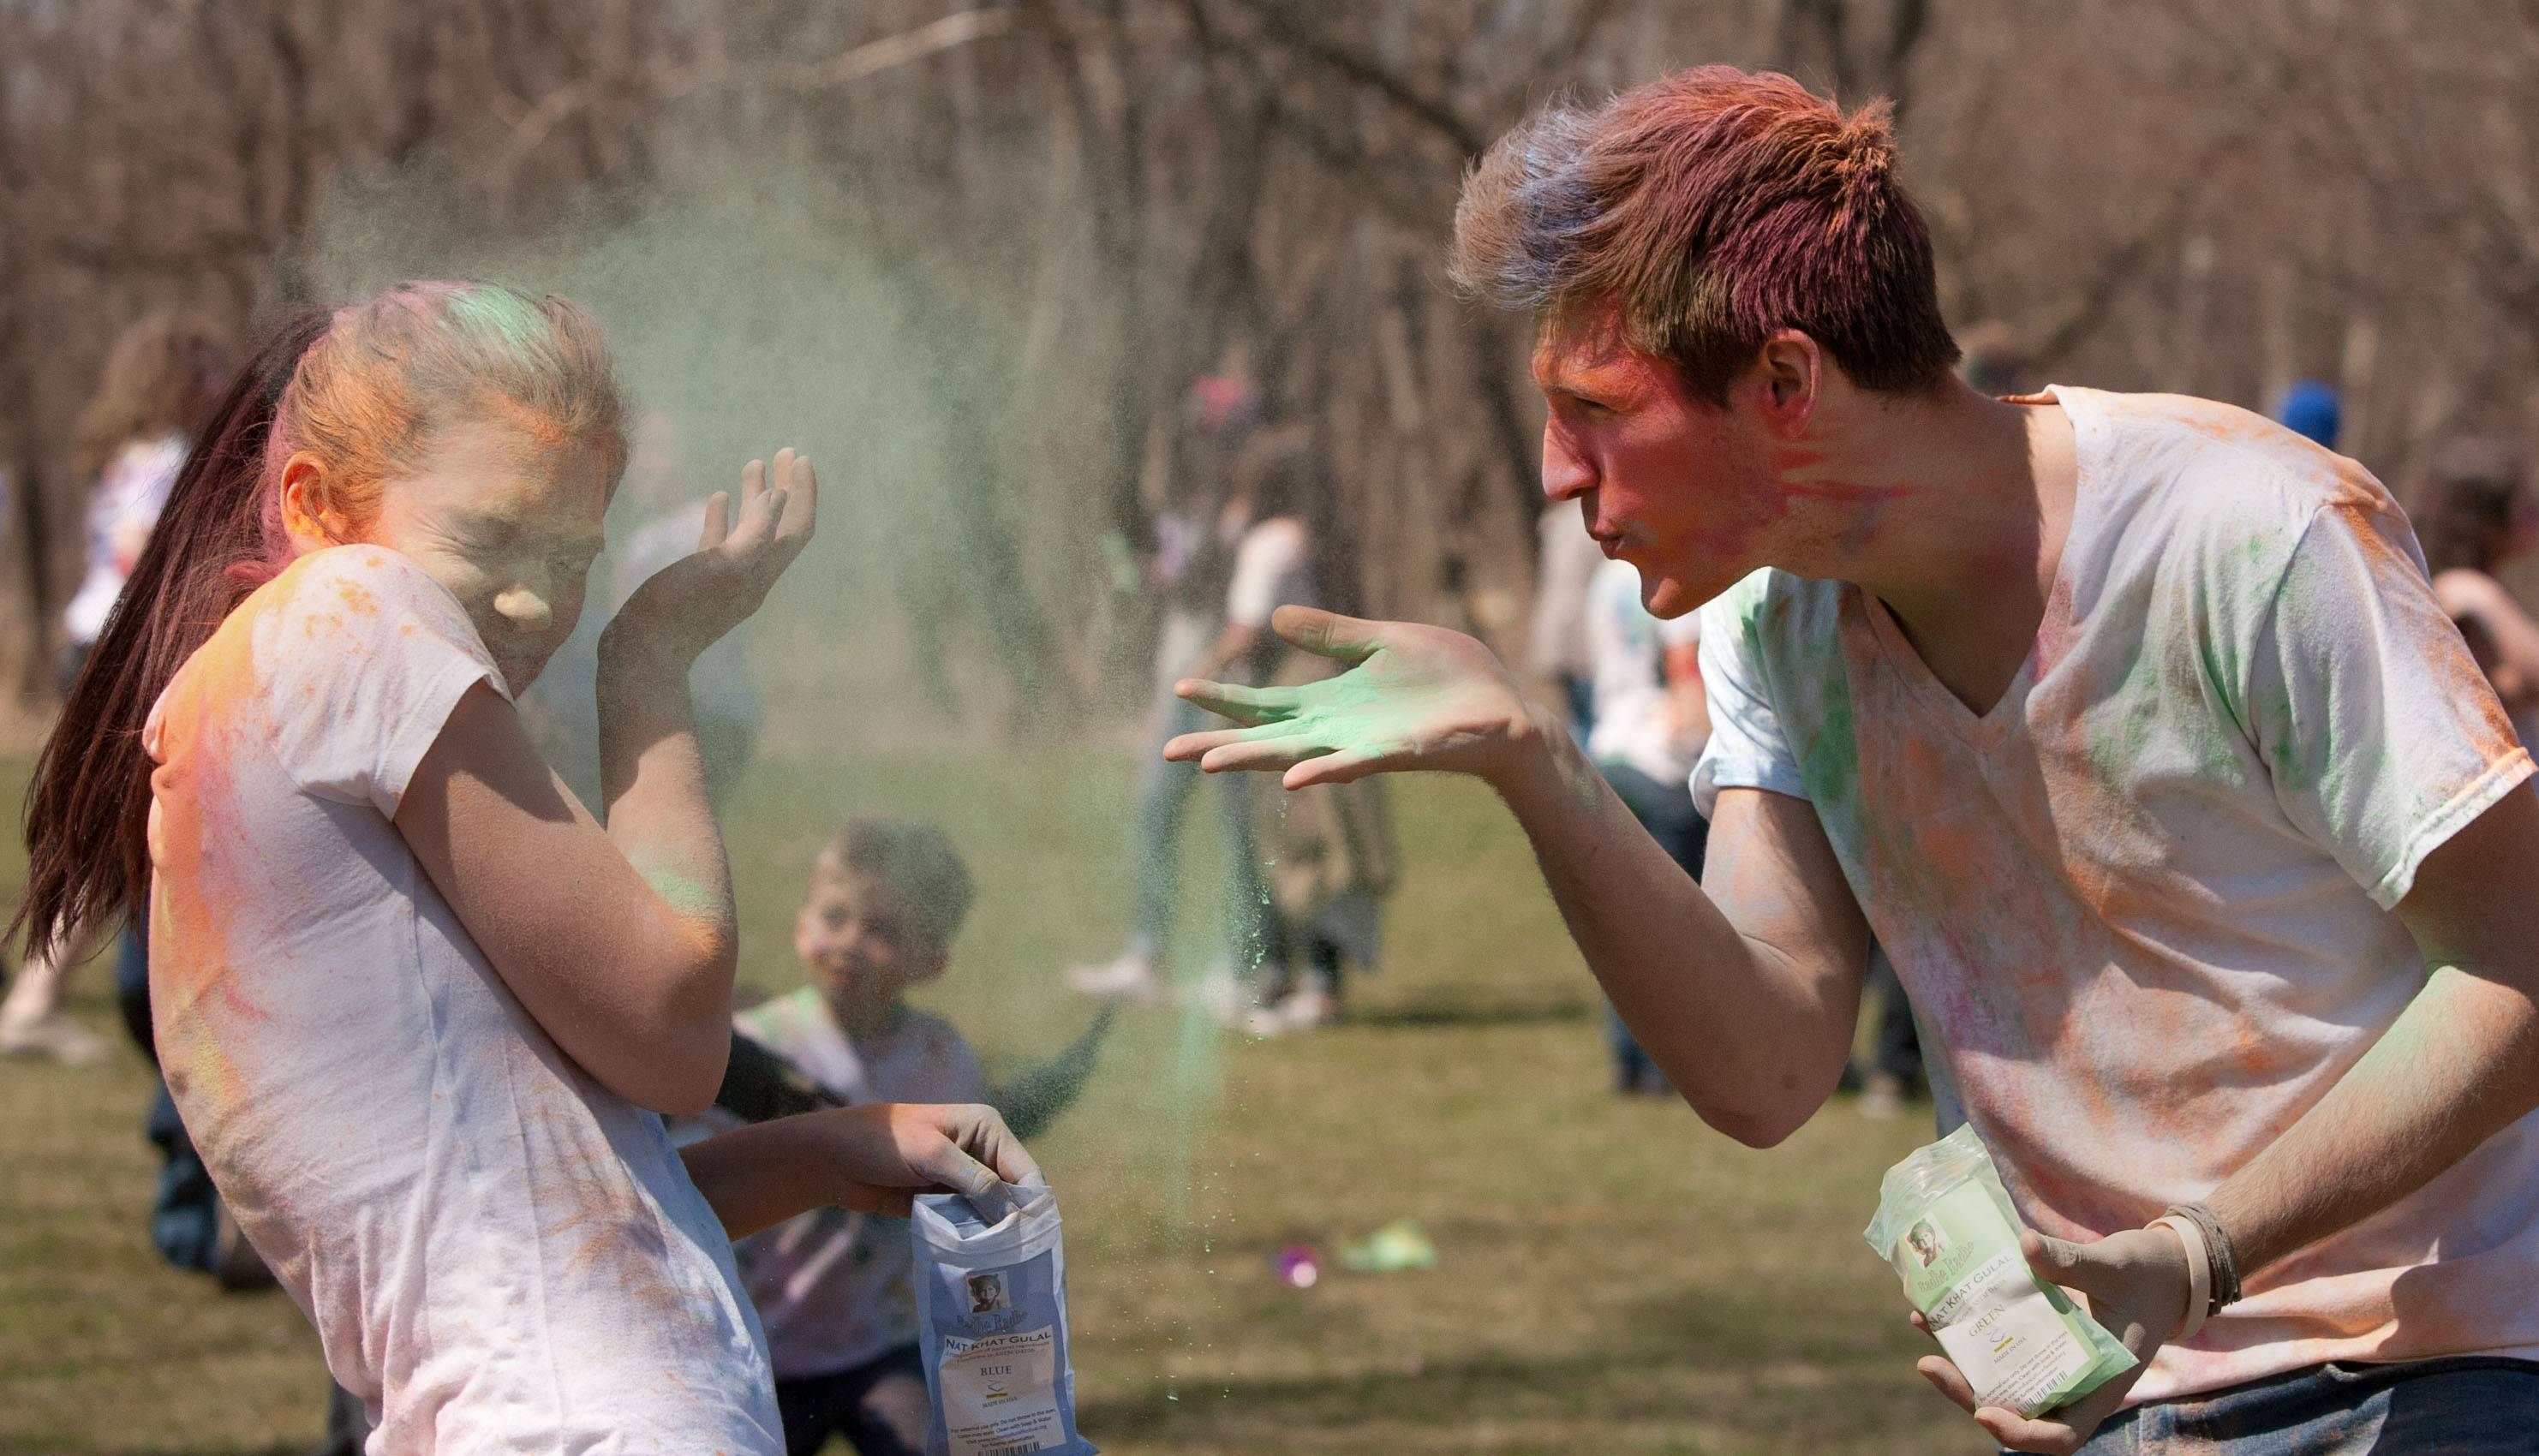 The Simply Vedic Cultural Society hosts the annual Festival of Colors in celebration of Holi, which rejoices at the arrival of spring. Participants like Natalie Barlowe of Glen Ellyn, left, and Danny Hochstatter, right, throw packets of colored powder/flour at each other in honor of the changing seasons in Naperville.